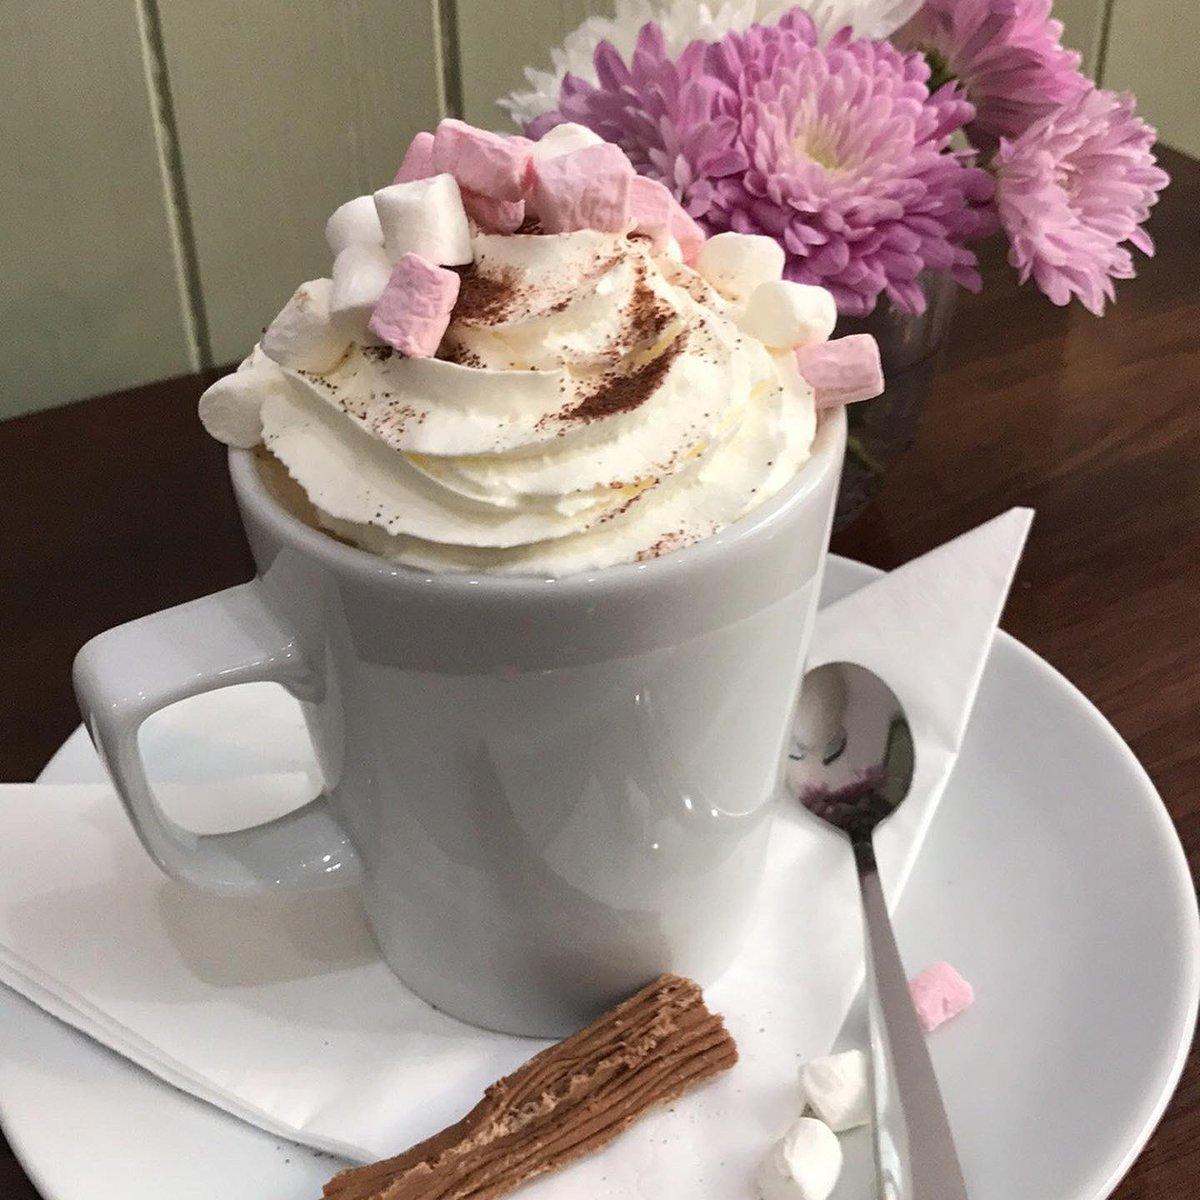 #cake and #hotchocolate #glutenfree what's not to like pic.twitter.com/ded4sGNayG